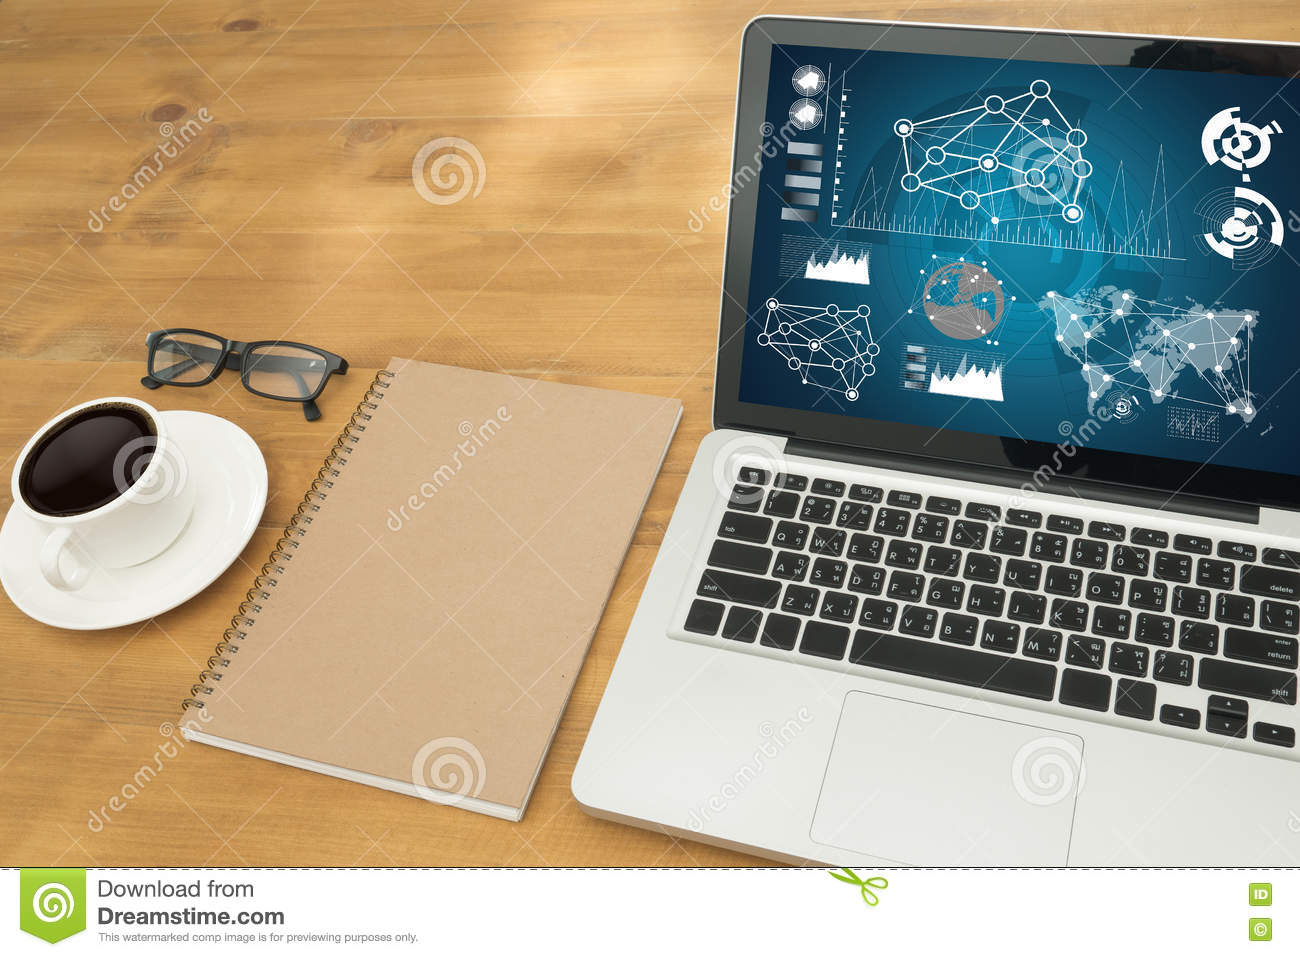 Hands At Work With Financial Reports And A Laptop With Other